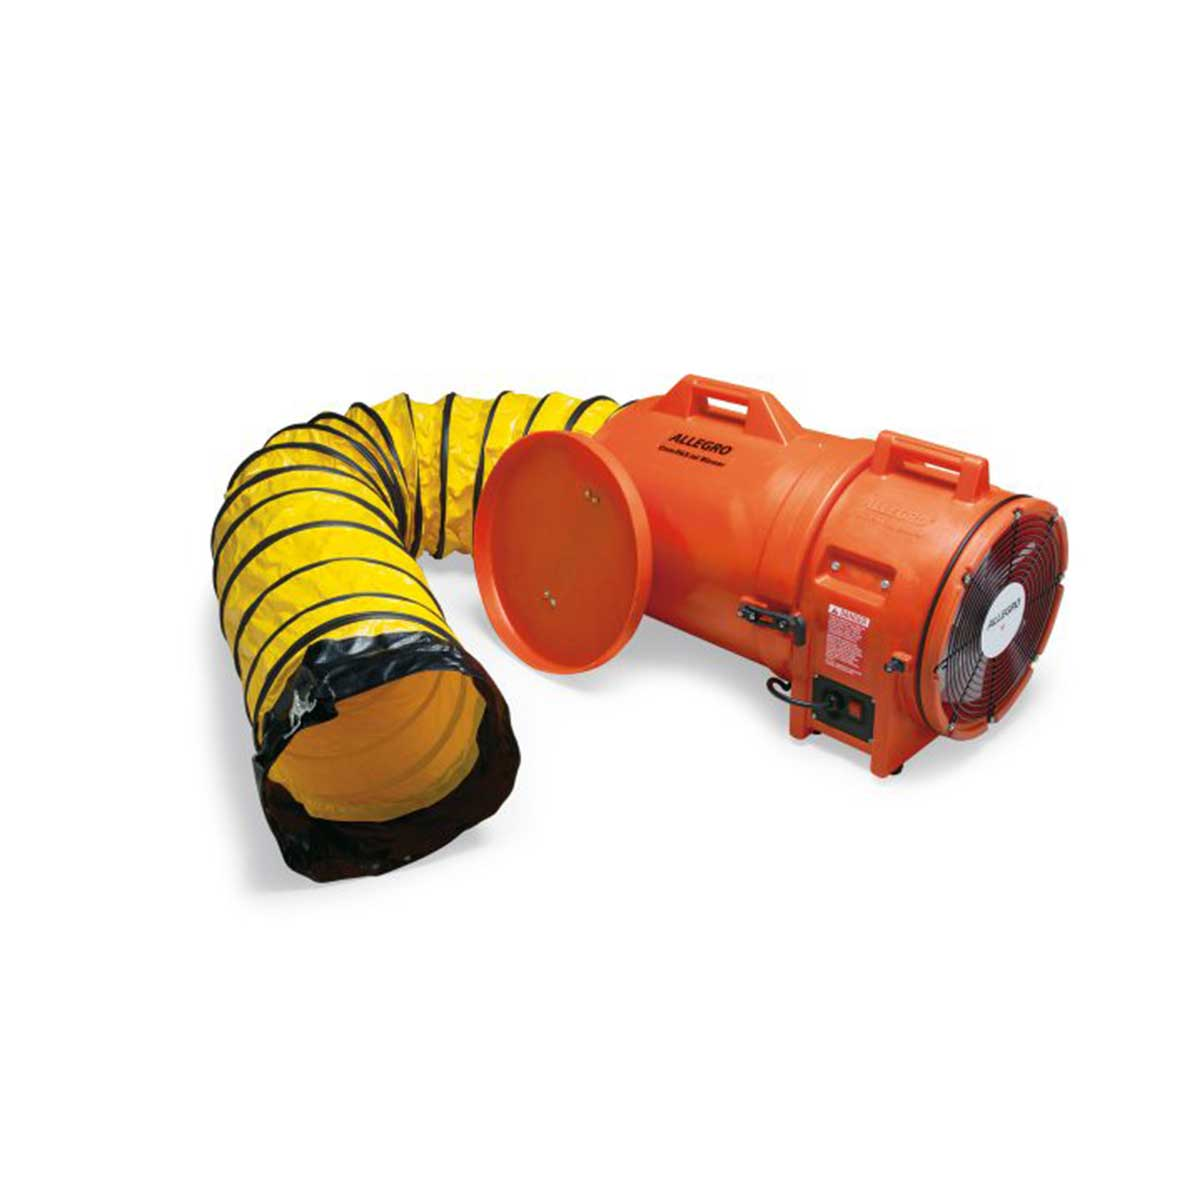 12″ Axial AC Plastic Blower w/ Canister & 25′ Ducting, 220V/50 Hz. Part: ALL-9543‐25E. Pkg: